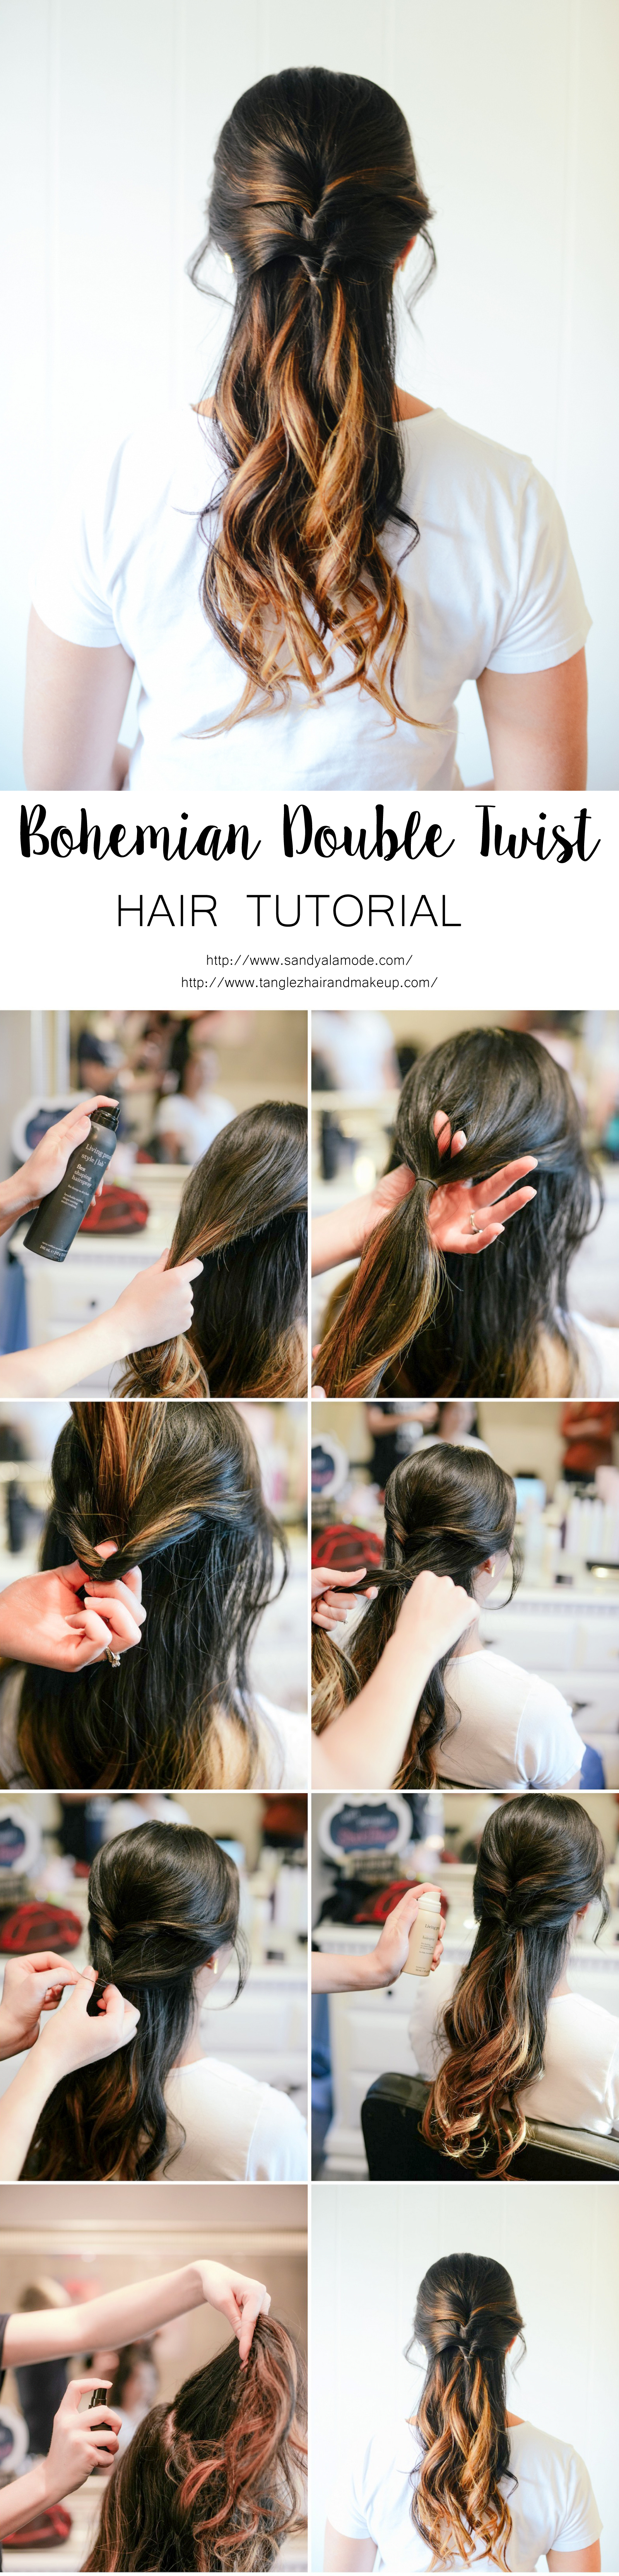 Bohemian Double Twist Hair Tutorial with blogger Sandy a la Mode, Hair Stylist Tanglez Hair and Makeup and Living Proof products